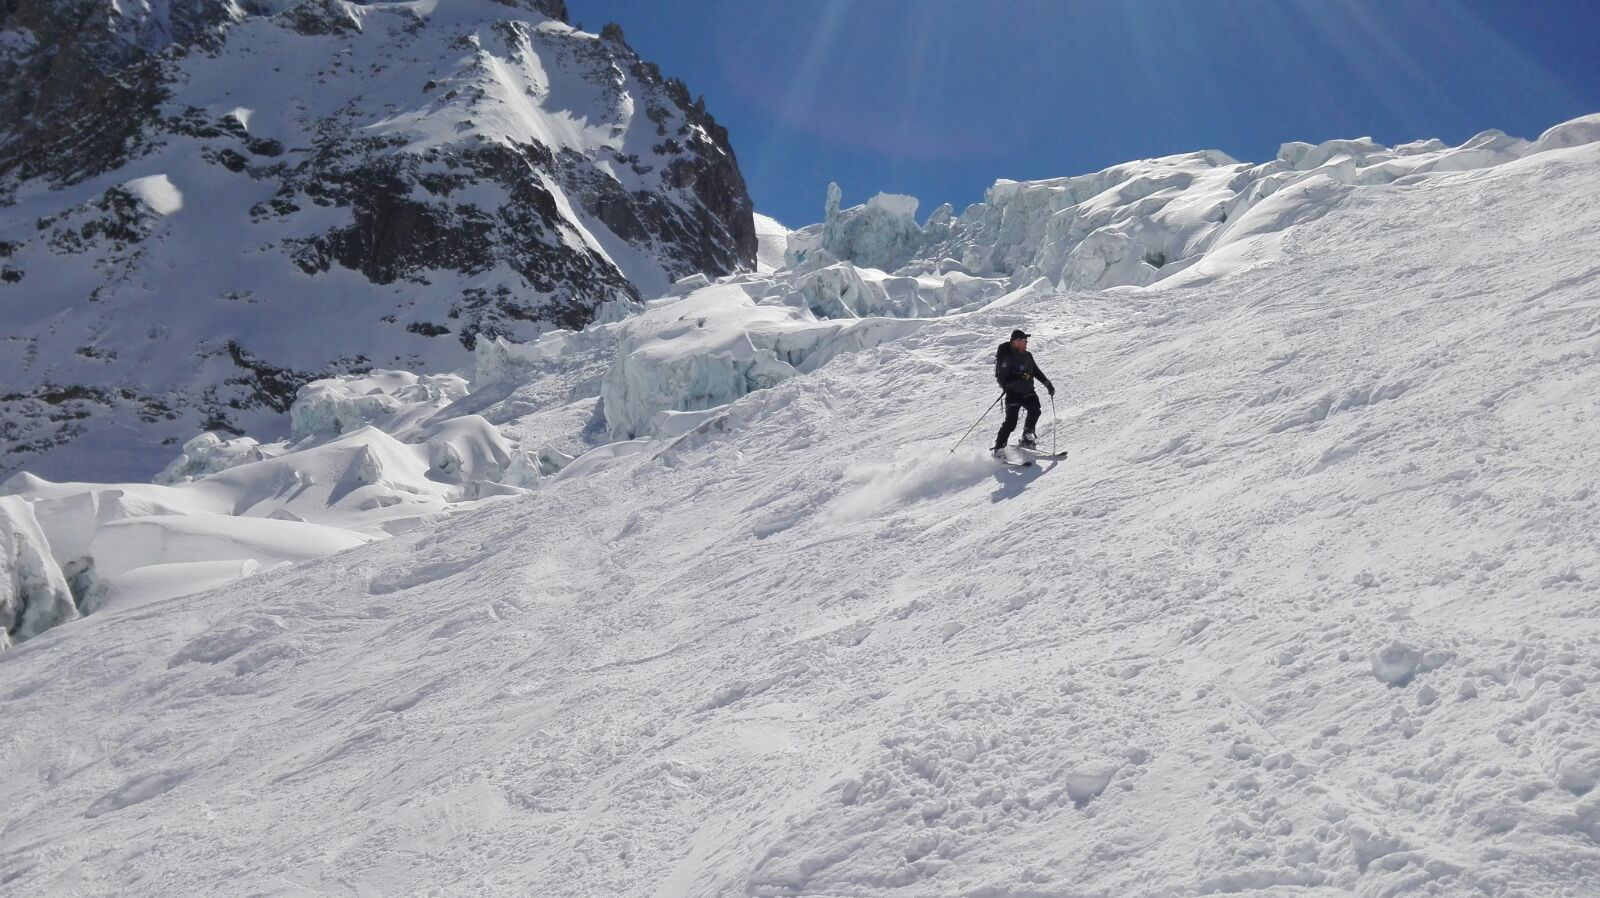 vallee blanche guide alpine proup (9)